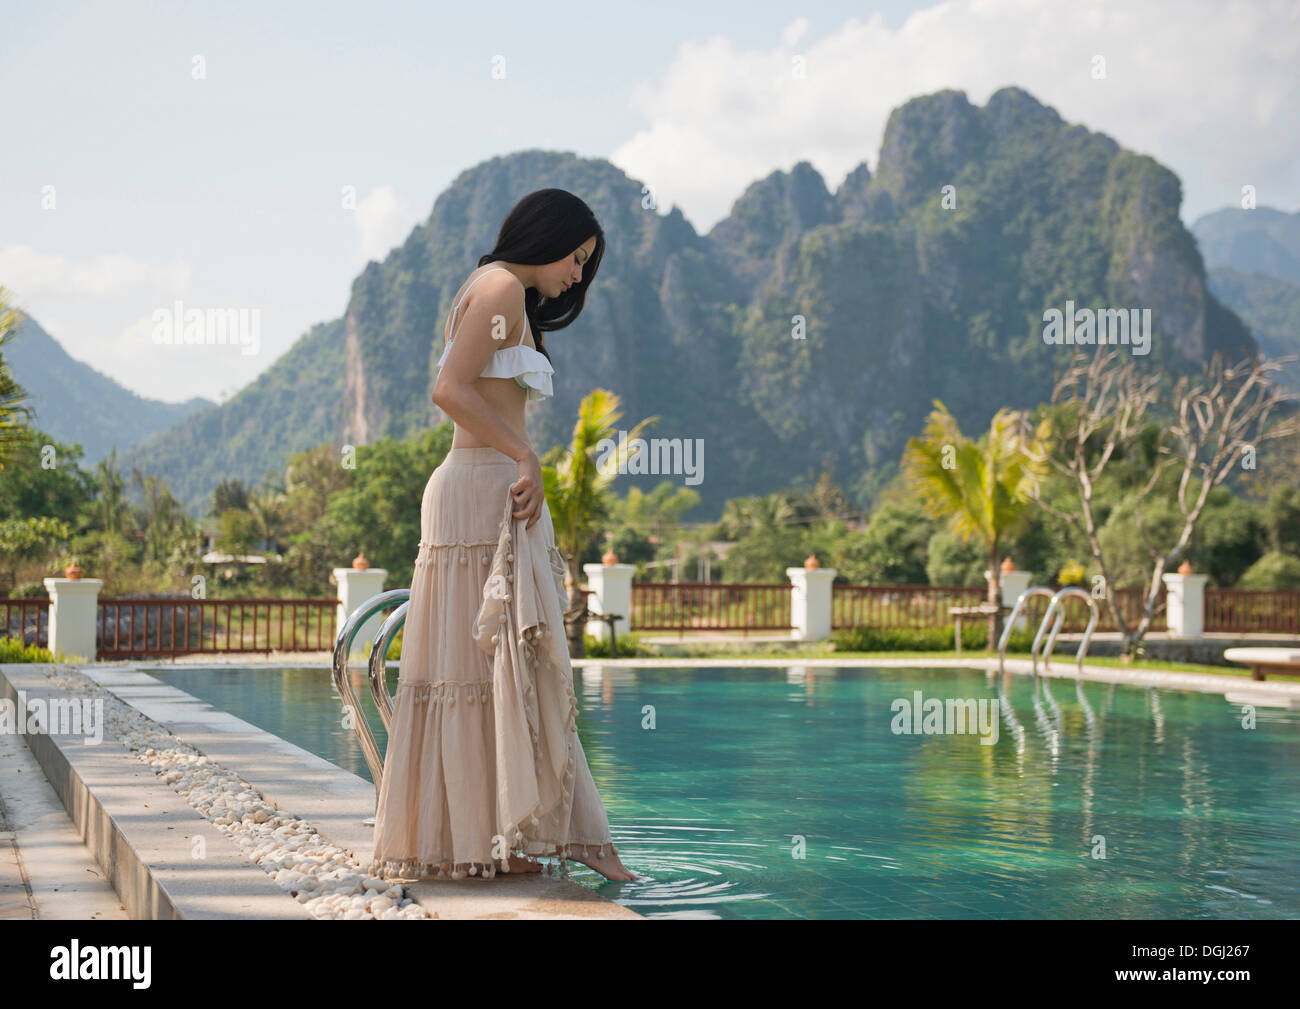 Woman dipping toe in swimming pool, Vang Vieng, Laos - Stock Image